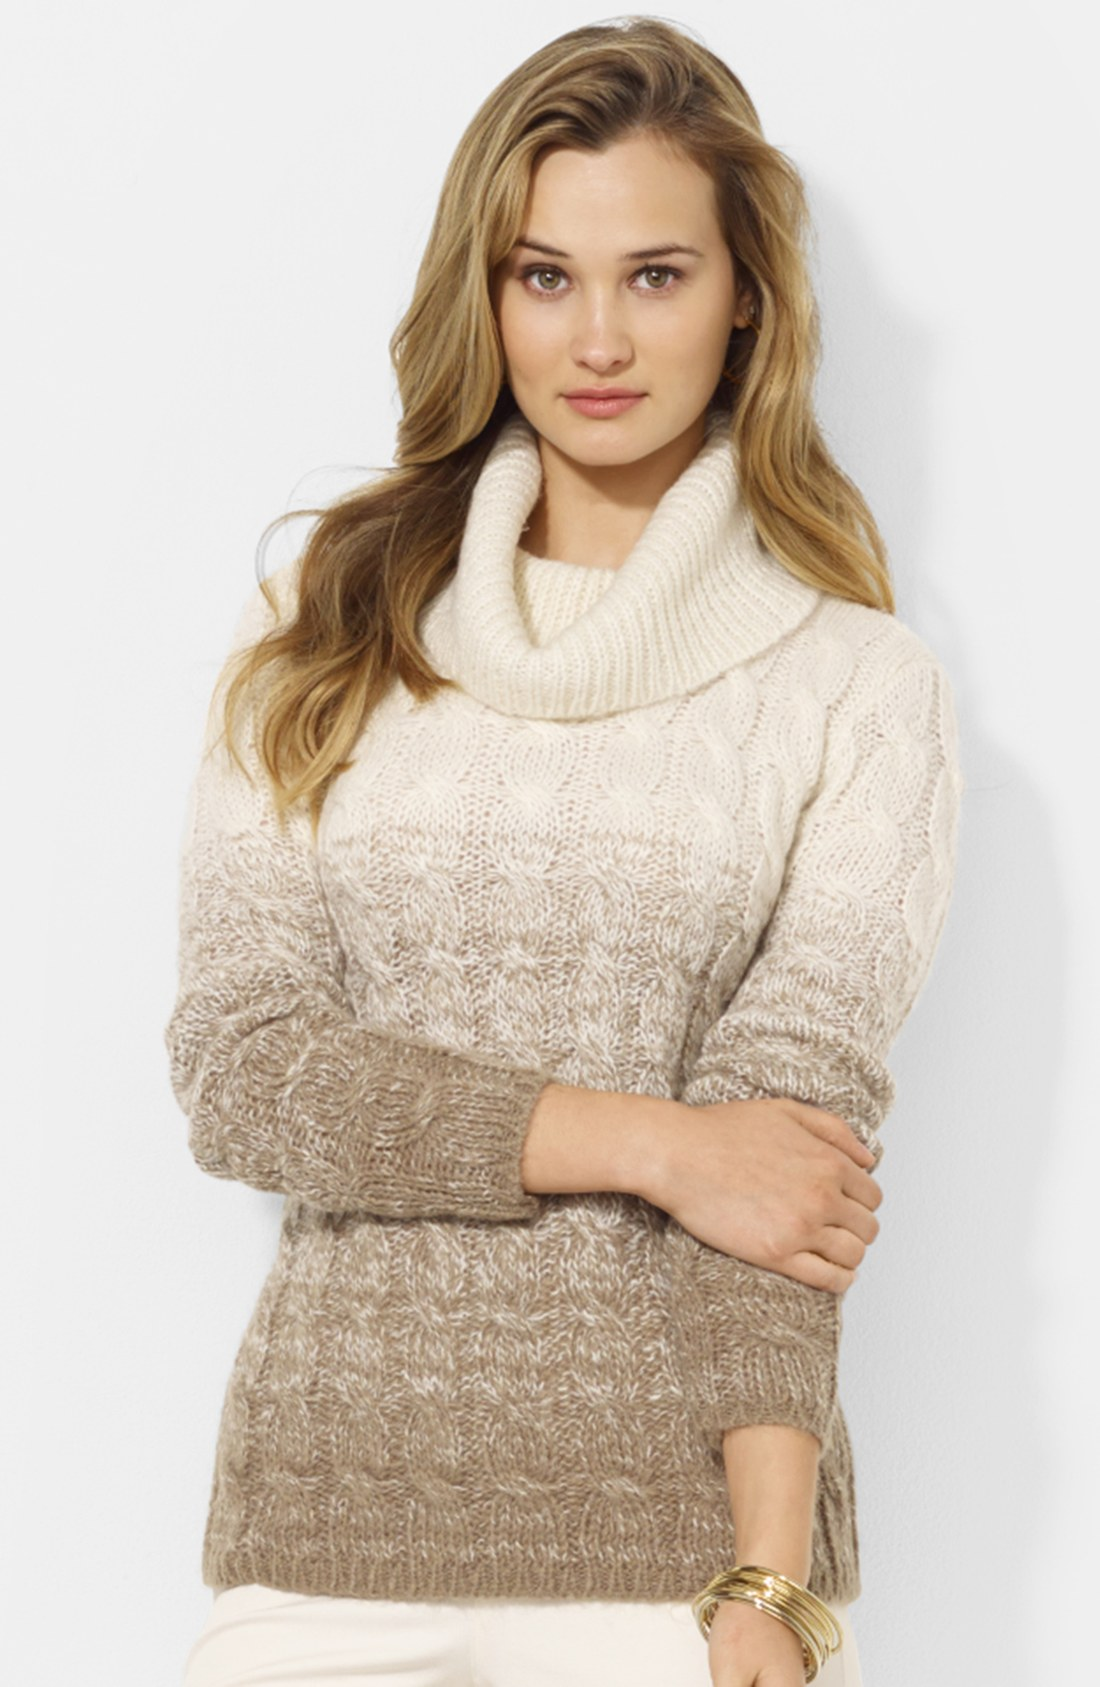 Lauren Mock Turtleneck Cable Knit Sweater - Cashmere Sweater England